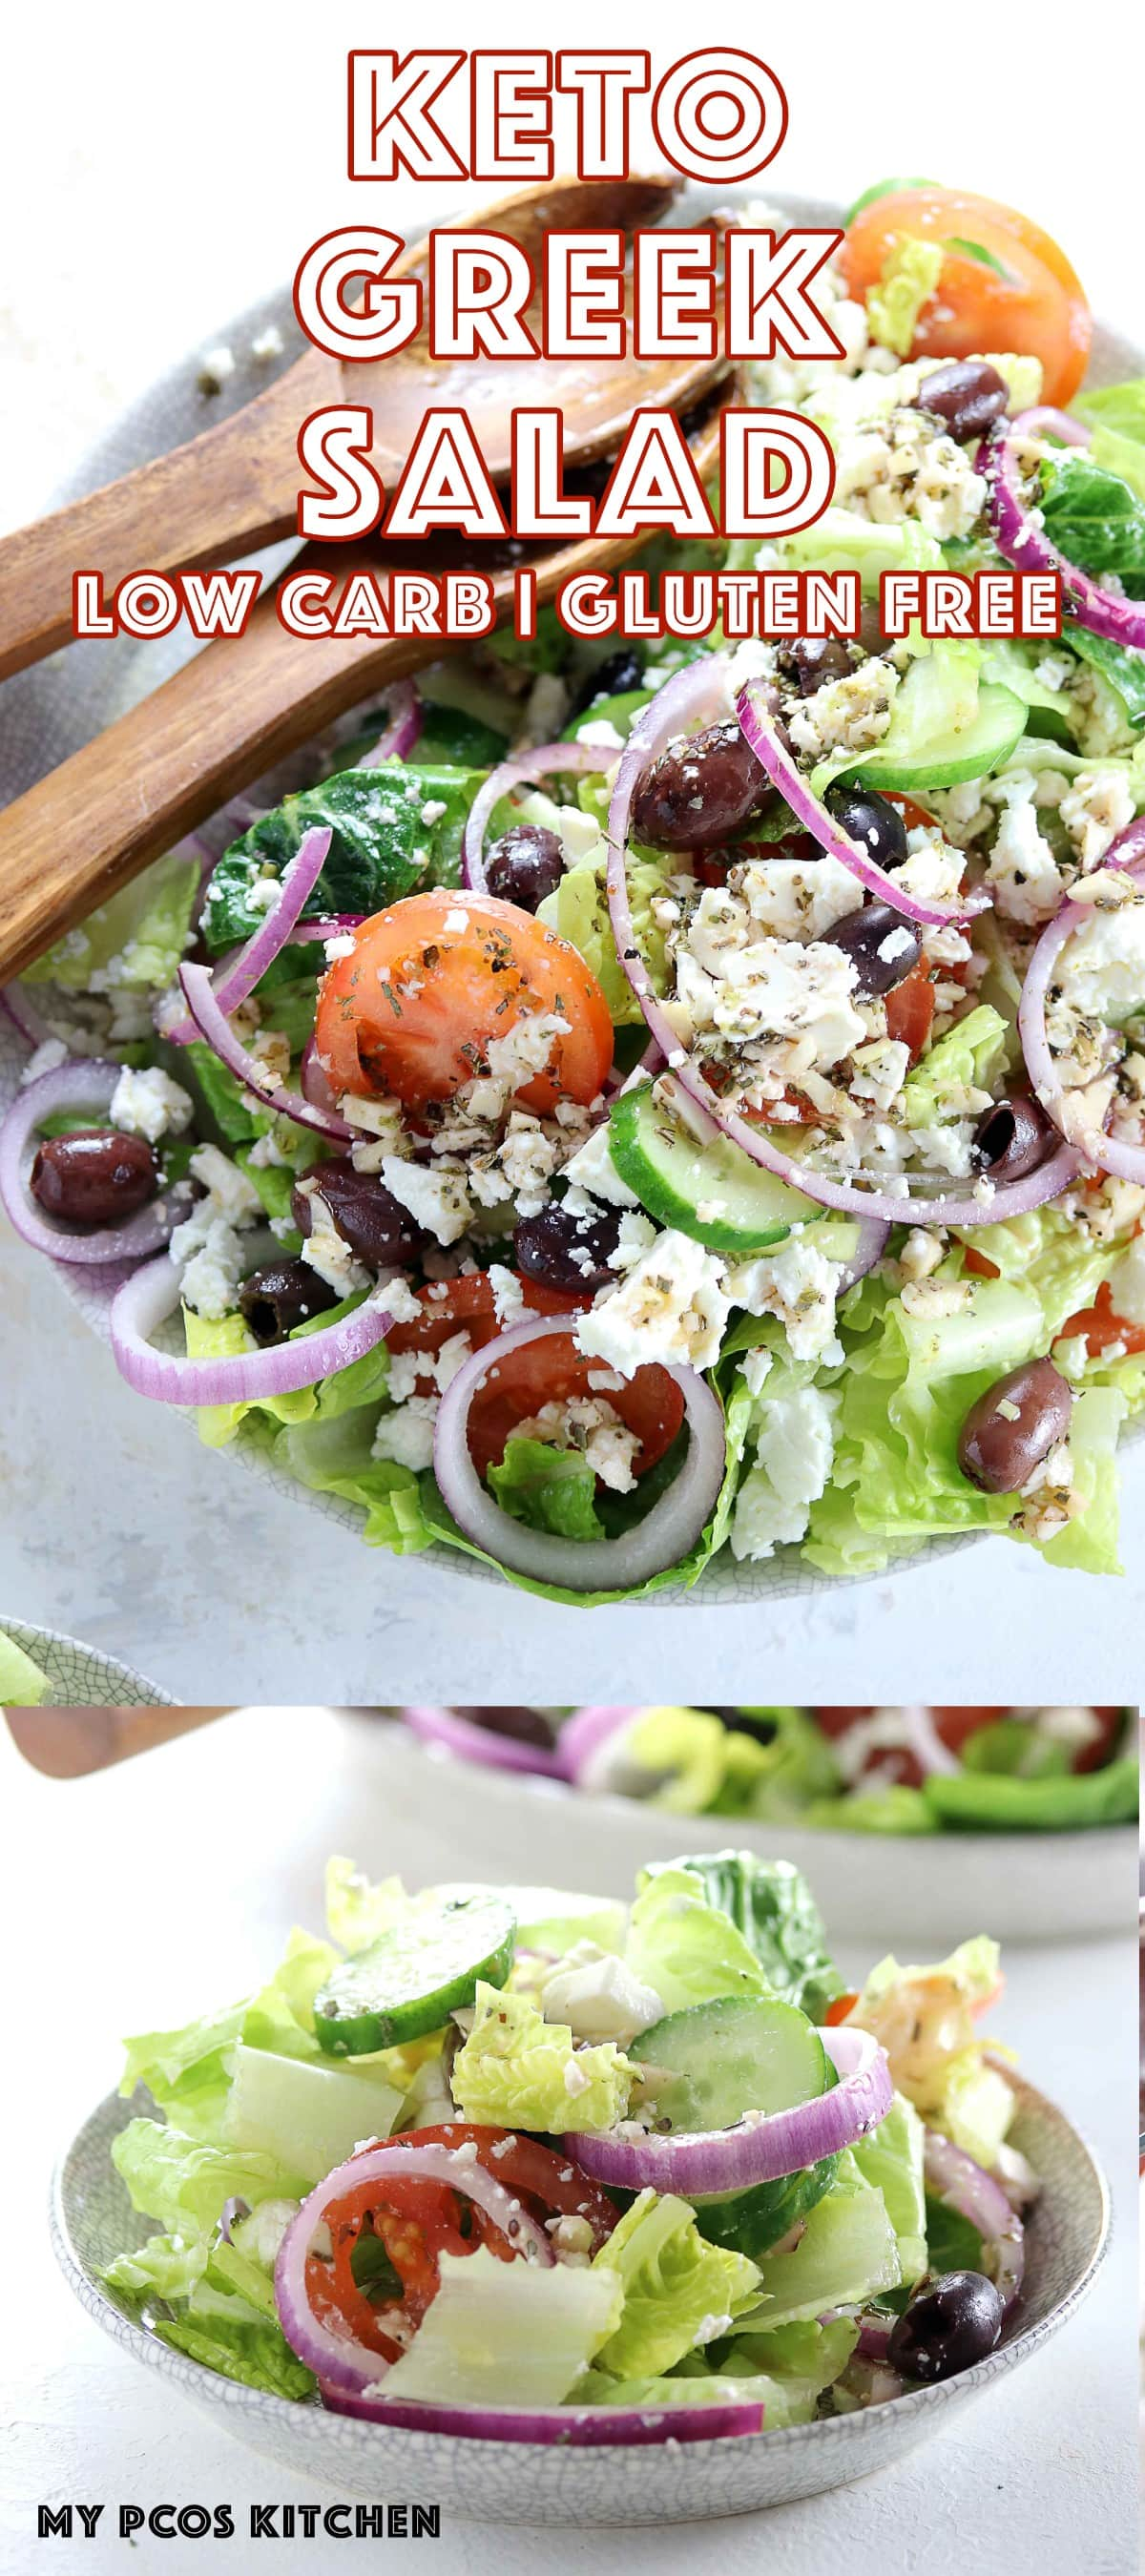 Authentic Greek Salad - My PCOS Kitchen - A delicious low carb and gluten free Greek salad topped with a homemade Greek salad dressing. #lowcarb #greeksalad #healthyeating #glutenfree salad #lchf